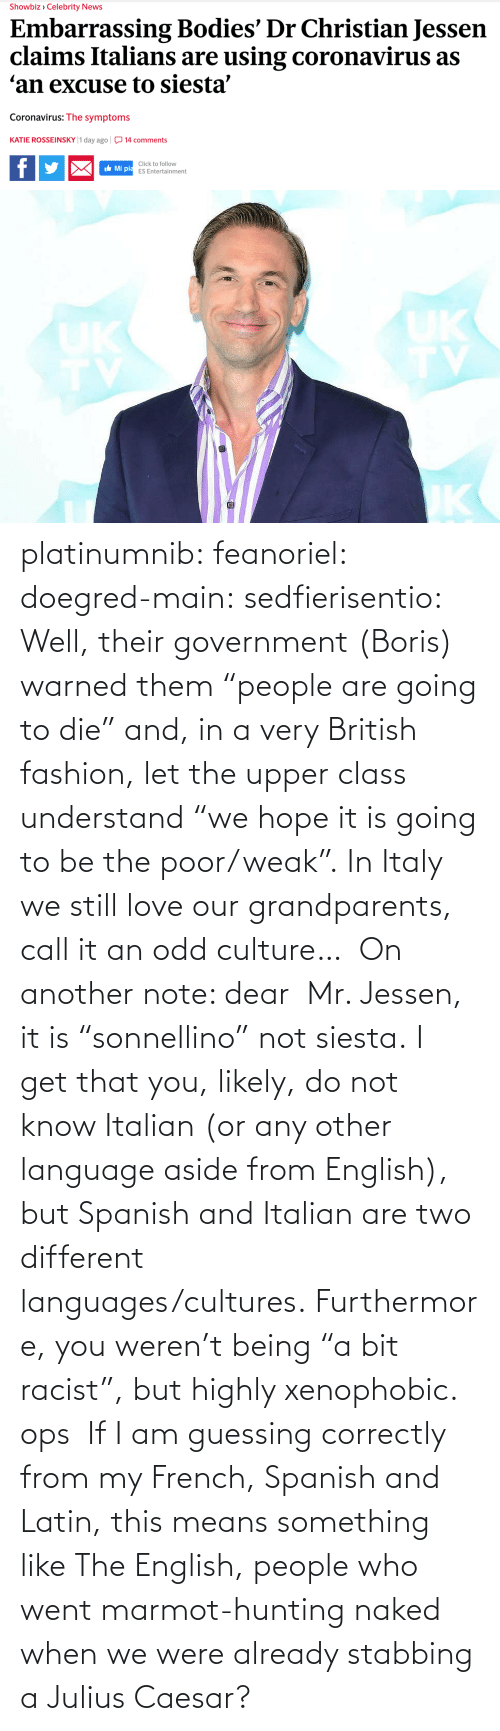 "Very: platinumnib:  feanoriel: doegred-main:  sedfierisentio:  Well, their government (Boris) warned them ""people are going to die"" and, in a very British fashion, let the upper class understand ""we hope it is going to be the poor/weak"". In Italy we still love our grandparents, call it an odd culture…  On another note: dear  Mr. Jessen, it is ""sonnellino"" not siesta. I get that you, likely, do not know Italian (or any other language aside from English), but Spanish and Italian are two different languages/cultures. Furthermore, you weren't being ""a bit racist"", but highly xenophobic.   ops   If I am guessing correctly from my French, Spanish and Latin, this means something like The English, people who went marmot-hunting naked when we were already stabbing a Julius Caesar?"